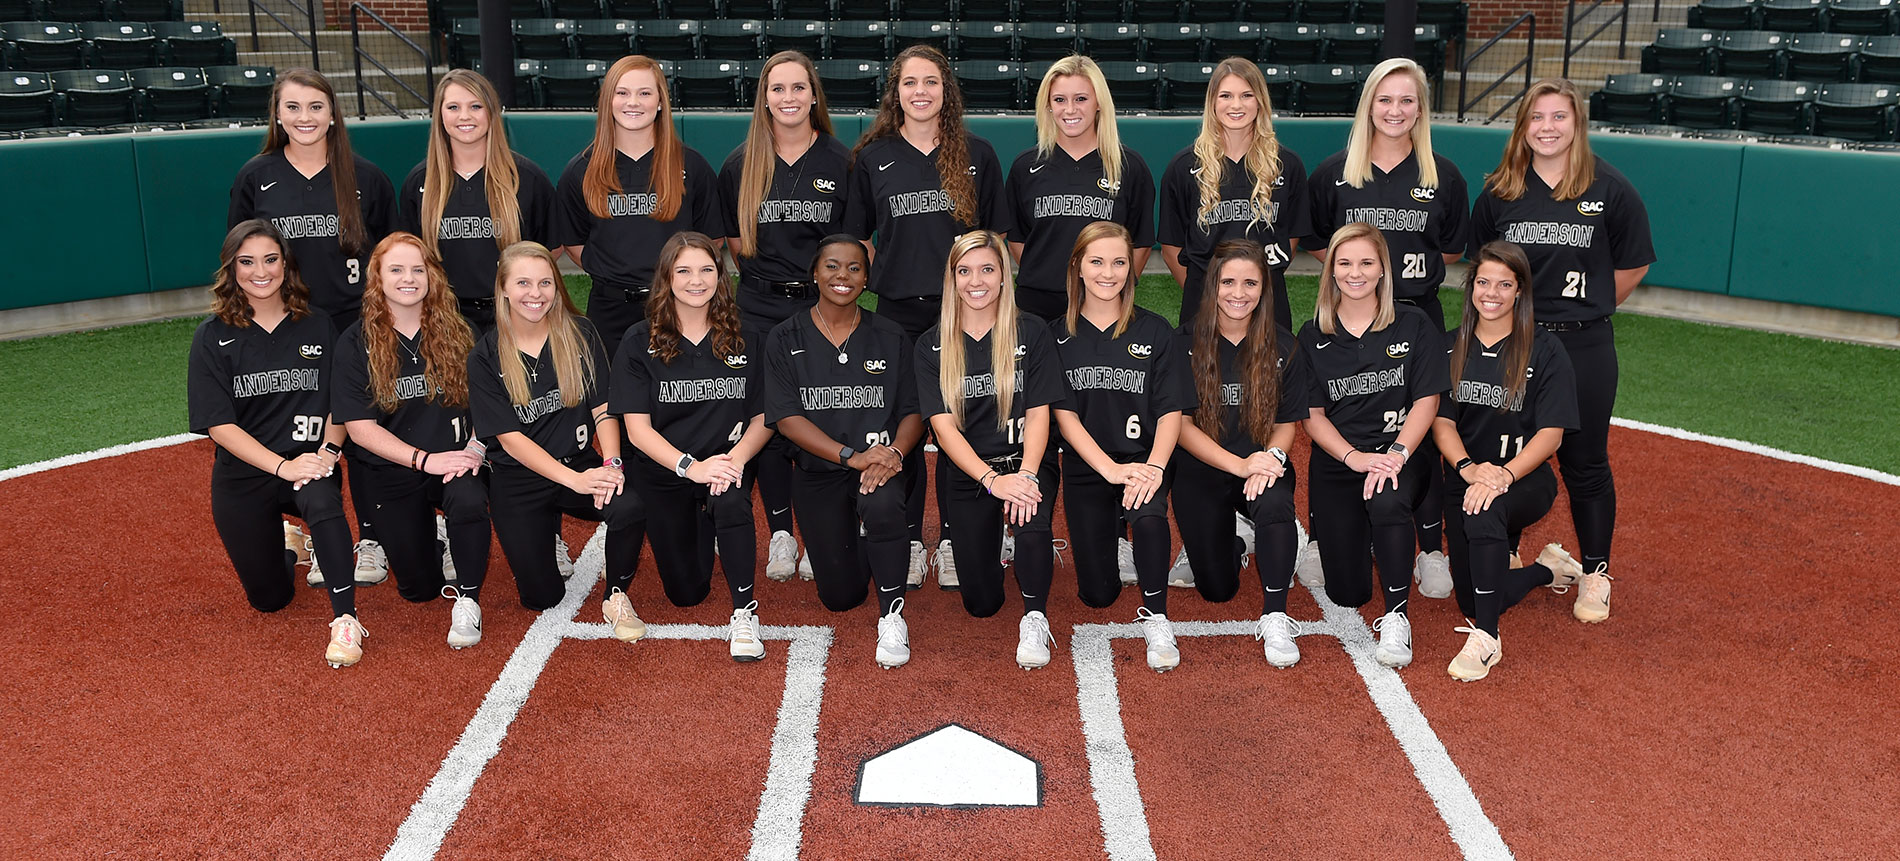 2019 Softball Schedule Has Been Released